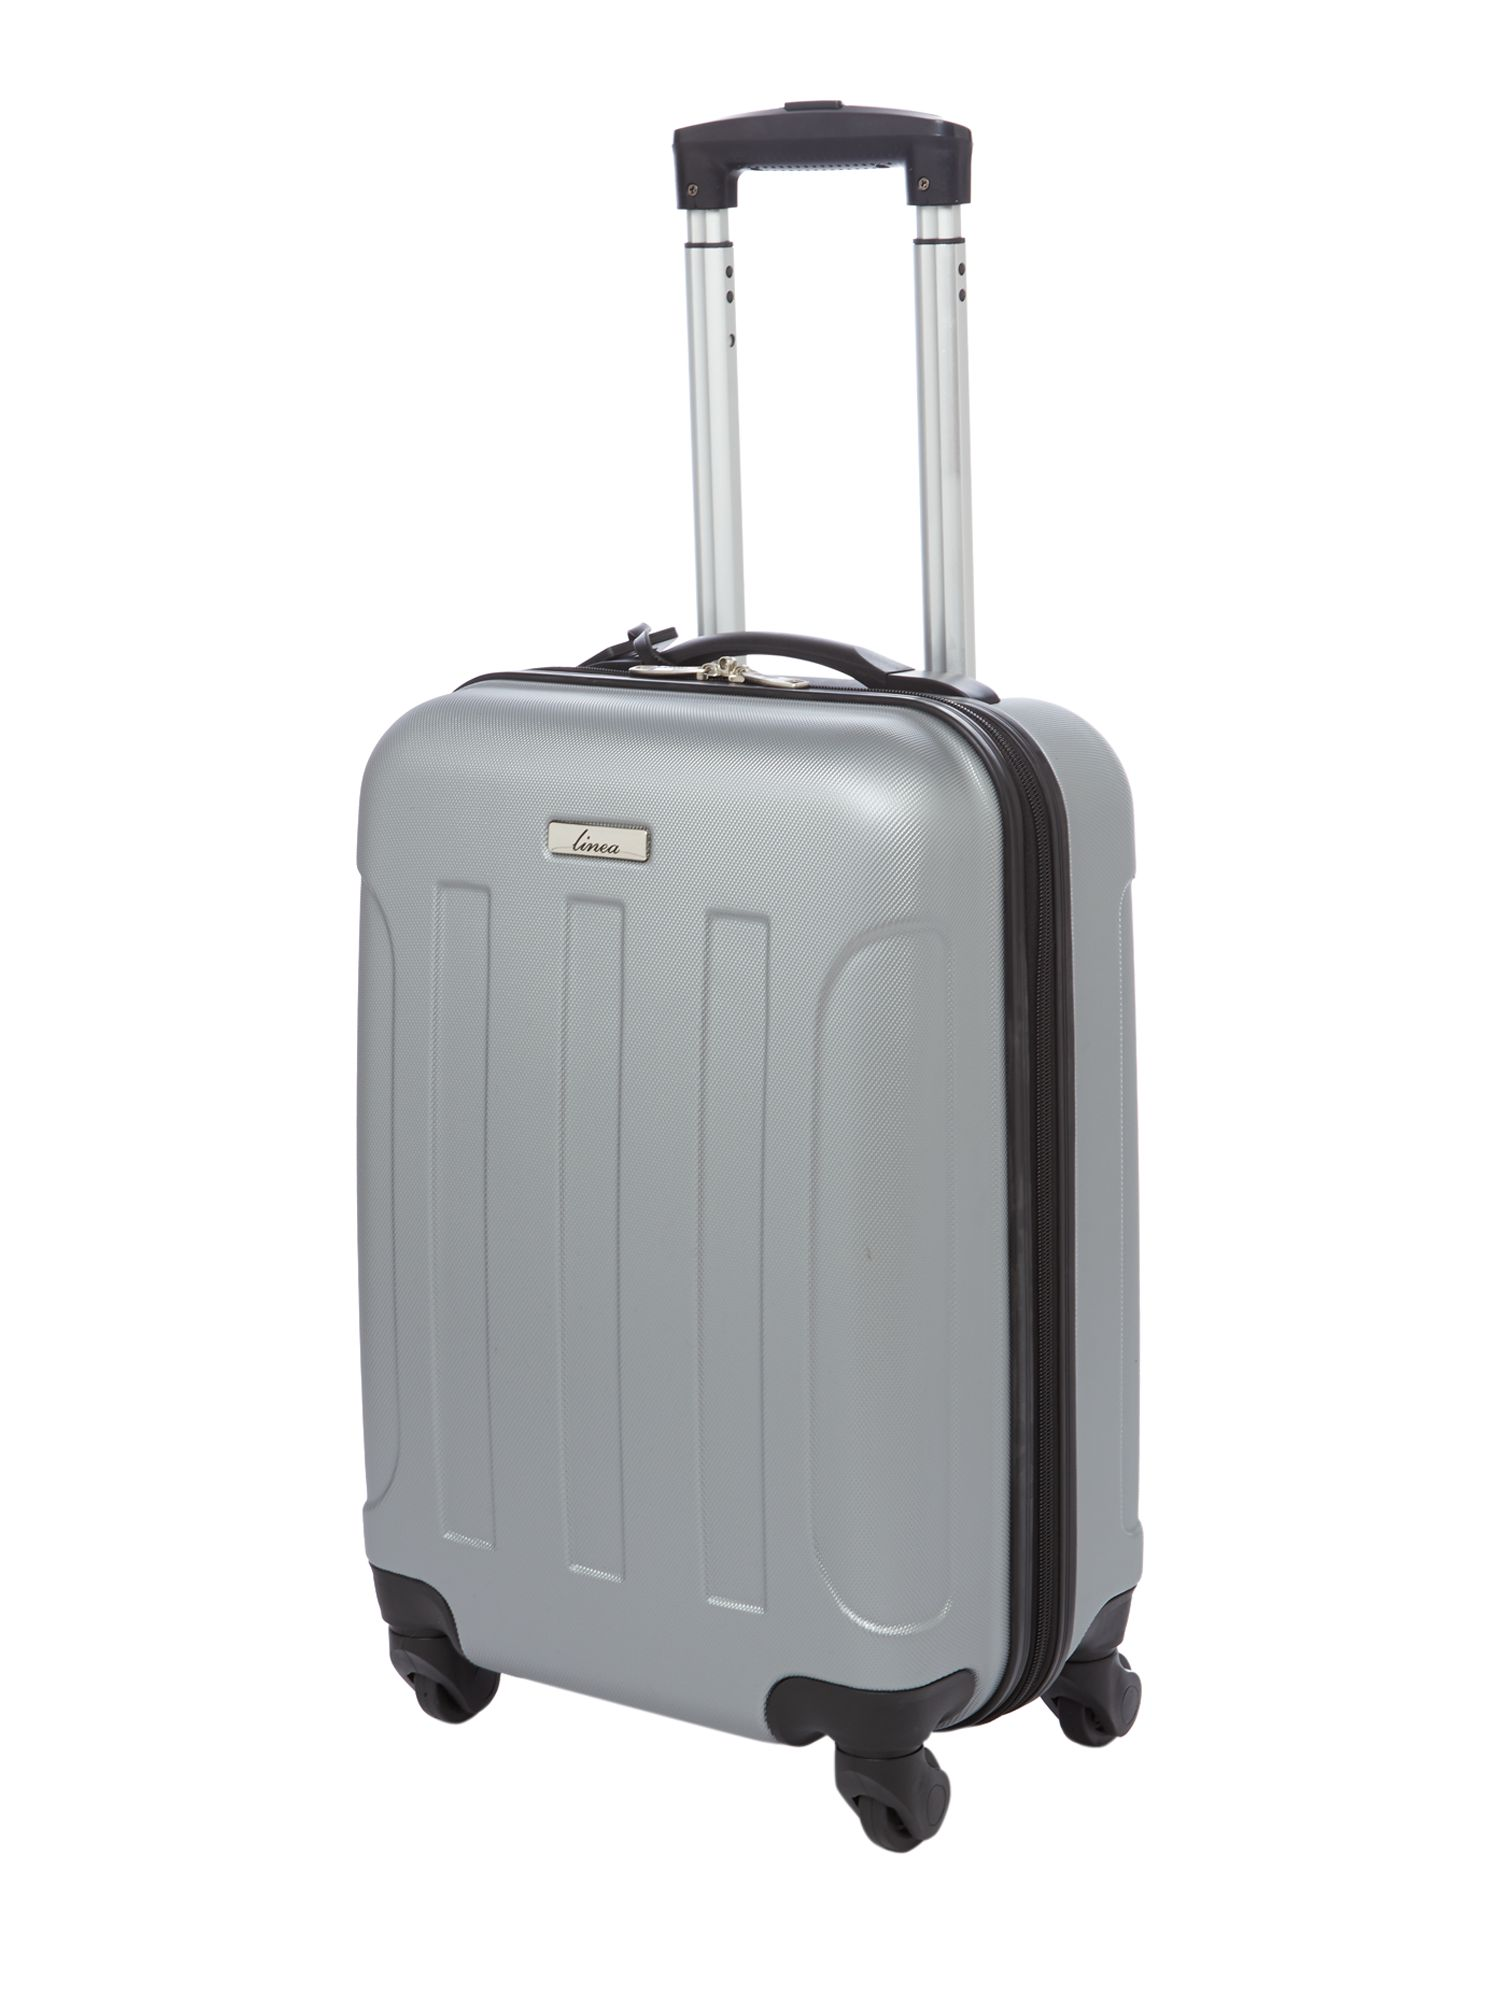 Dakota silver luggage range